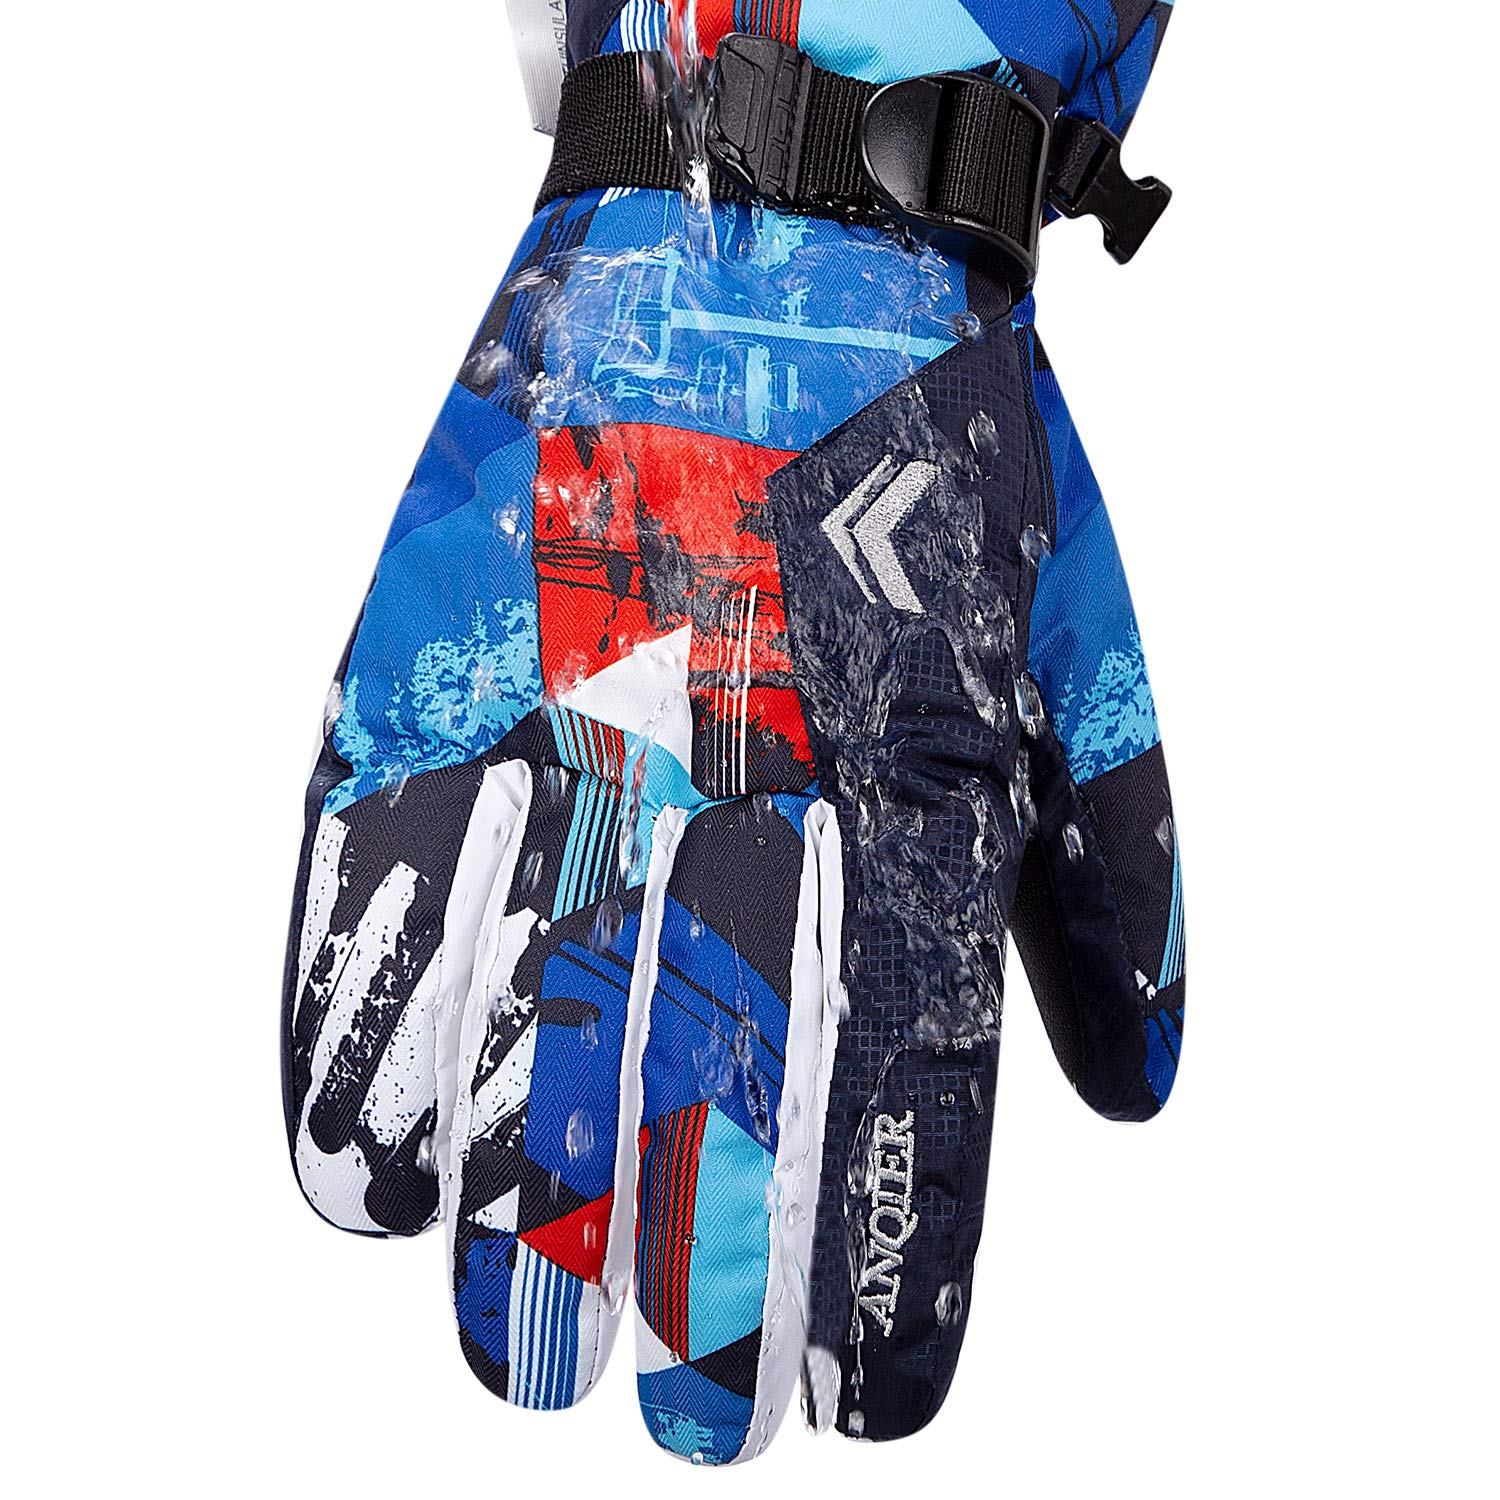 FengNiao Kids Ski Gloves Winter Thermal Windproof Waterproof Gloves Toddler Gloves Children Cycling Snowboard Running Gloves for Boys Girls